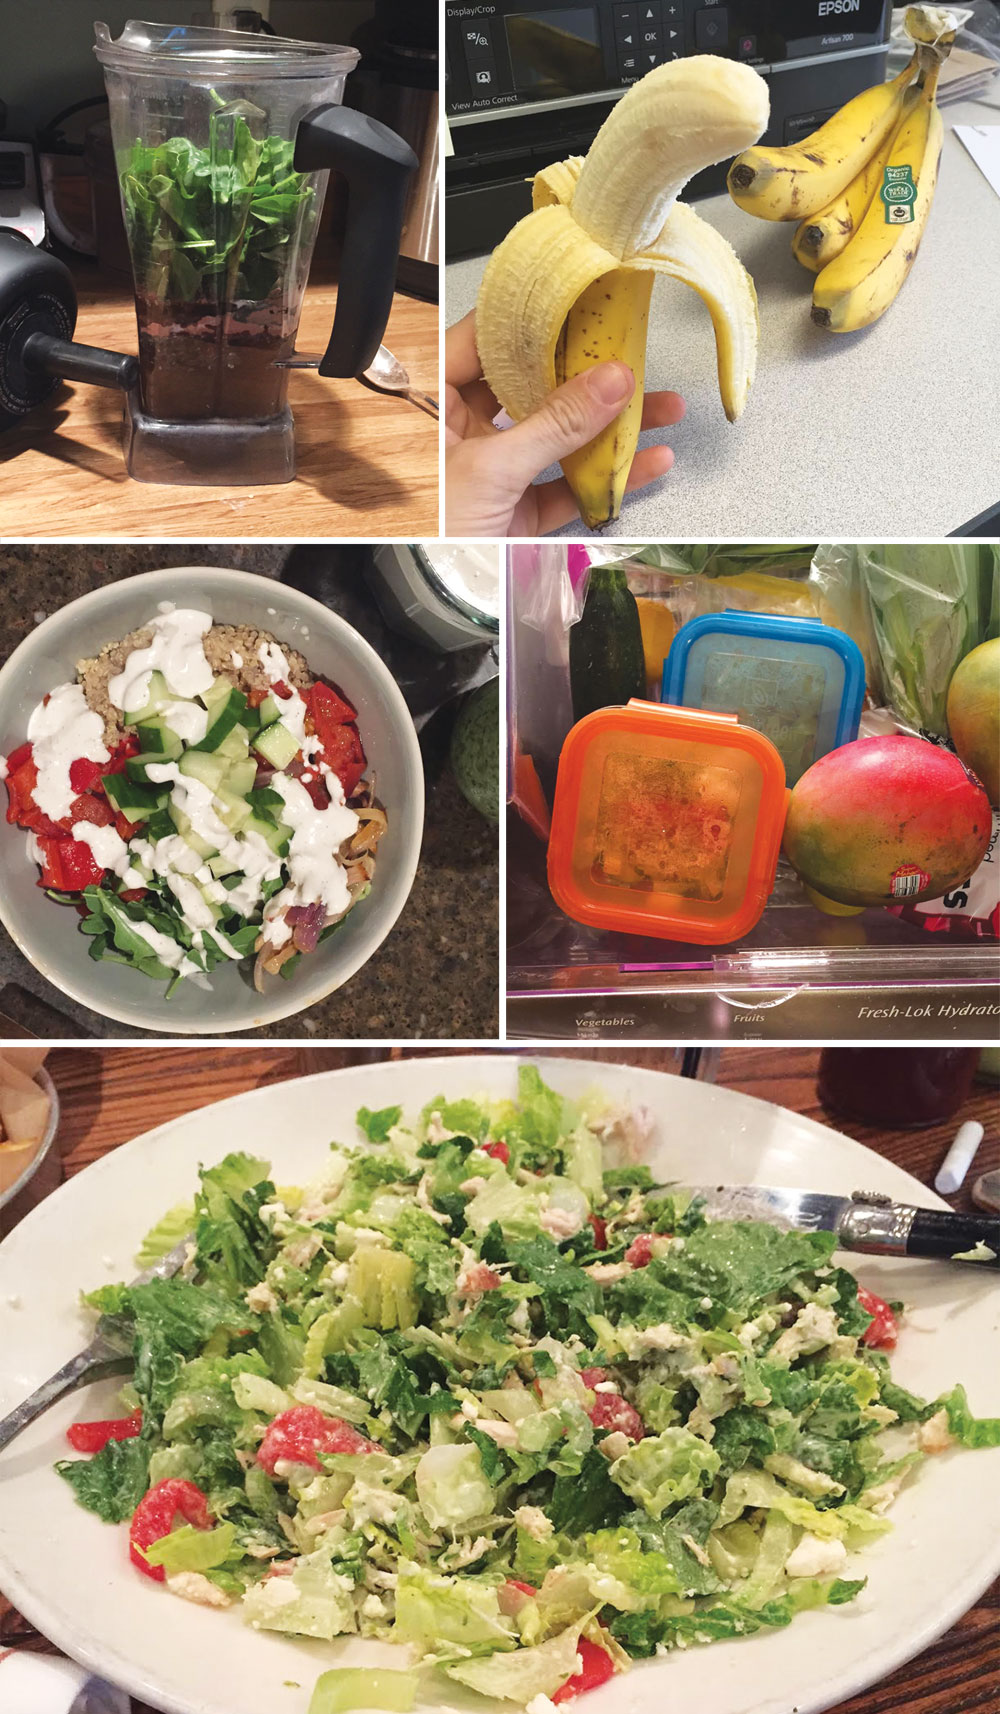 blender with smoothie ingredients, hand holding a peeled banana, bowl with salad, and plate with salad